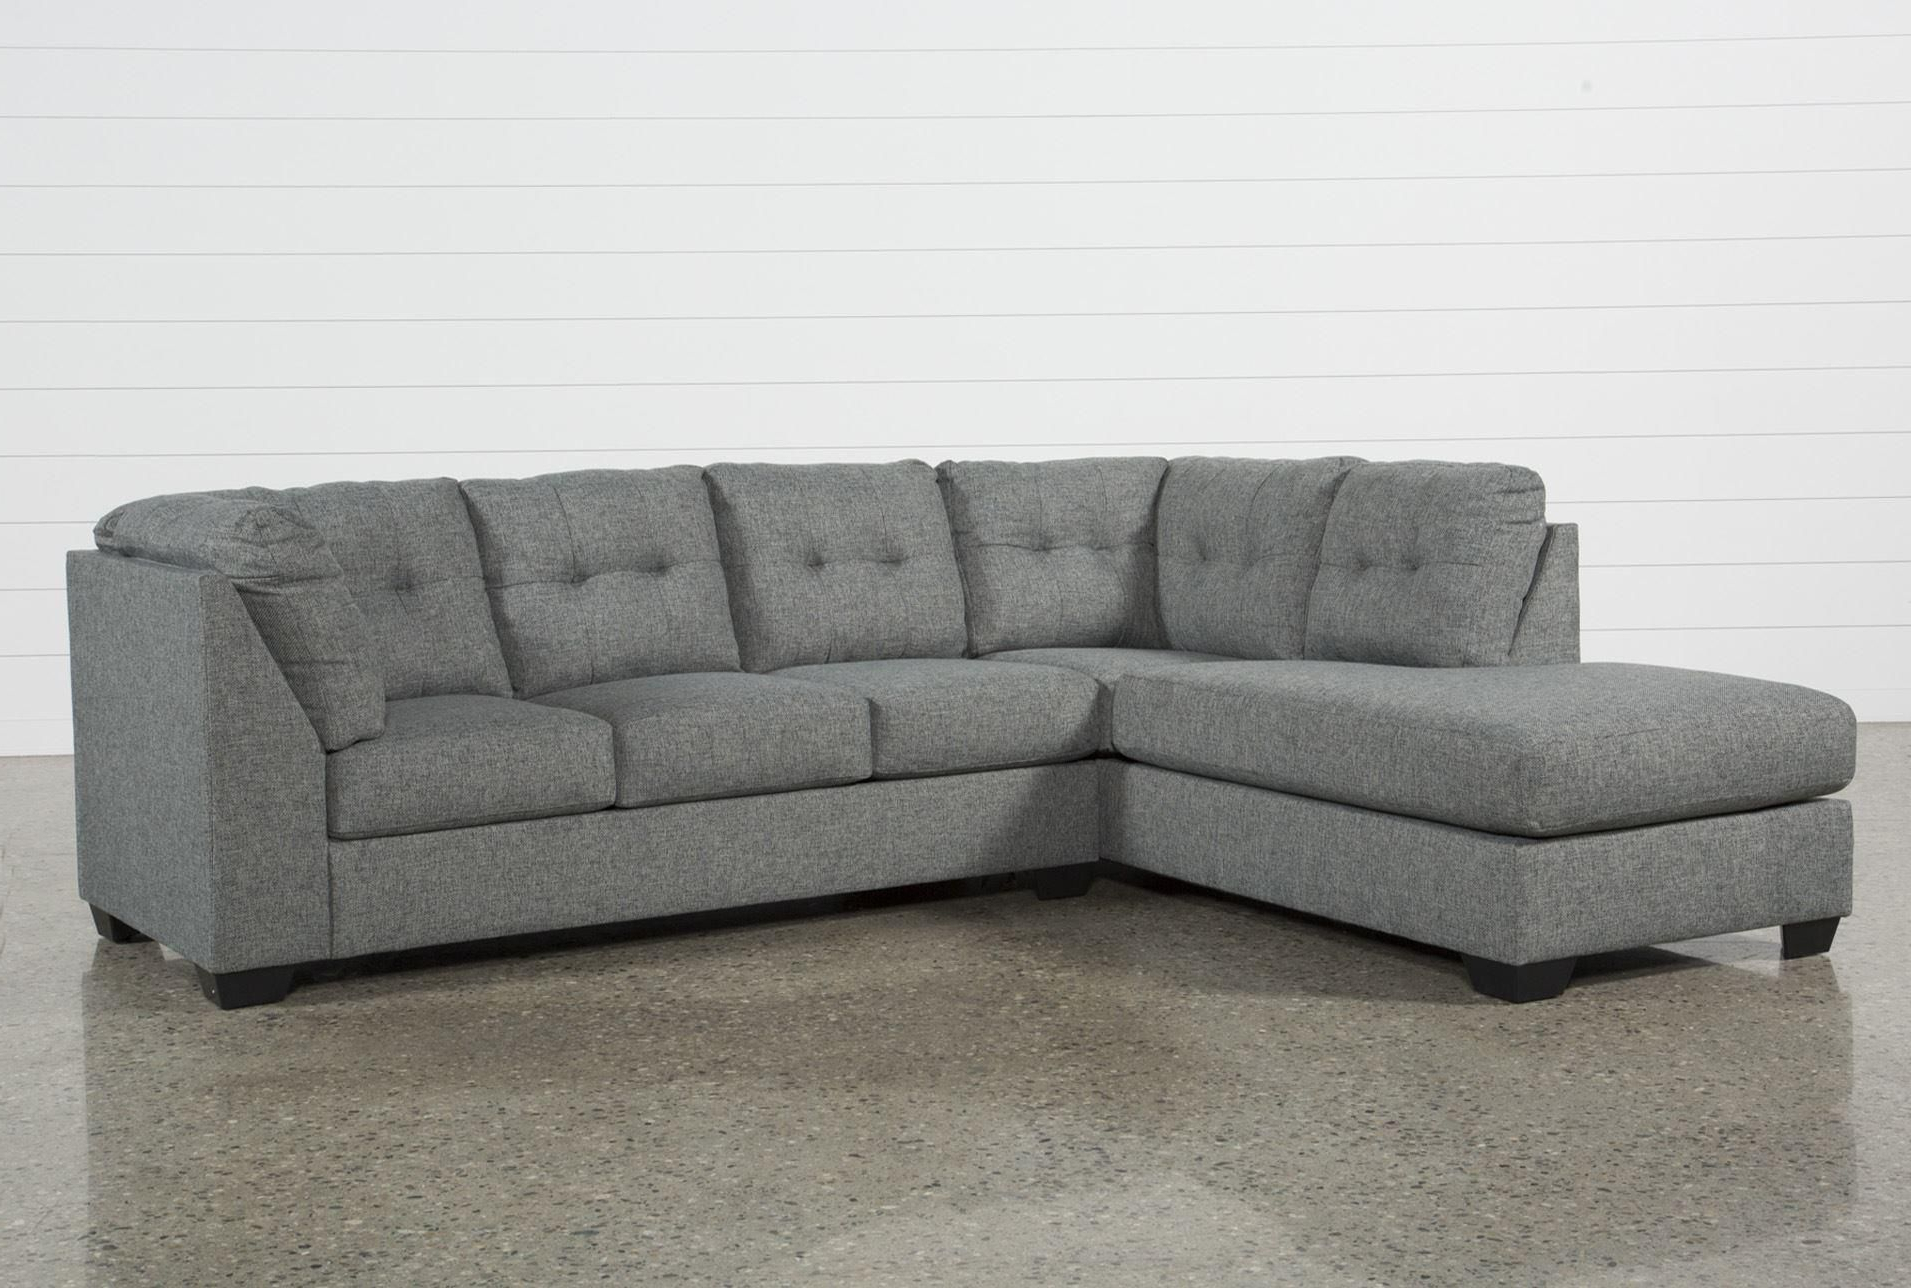 2019 Lucy Dark Grey 2 Piece Sleeper Sectionals With Raf Chaise With Regard To Arrowmask 2 Piece Sectional W/sleeper & Left Facing Chaise (View 2 of 20)